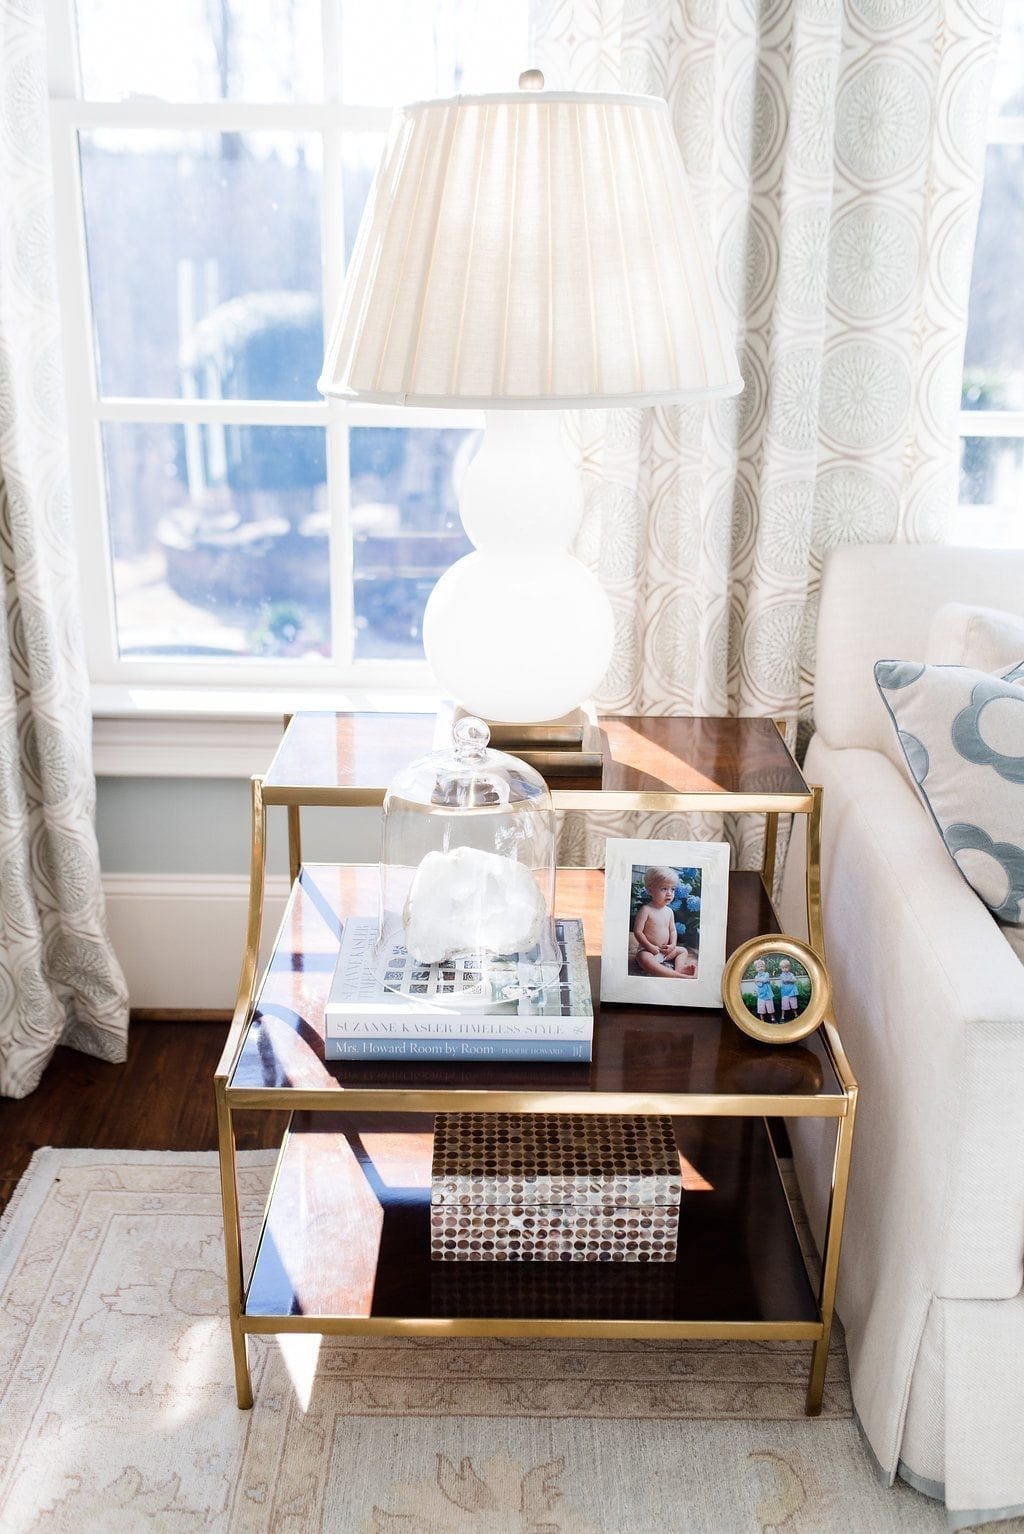 Cords driving you mad? Find out how to hide lamp cords to make your furniture look tidy and clean and more organized. Learn how to hide lamp cords with 3 creative ways to hide cords! how to hide lamp cords. Hiding lamp cords will make more of a difference than you think!